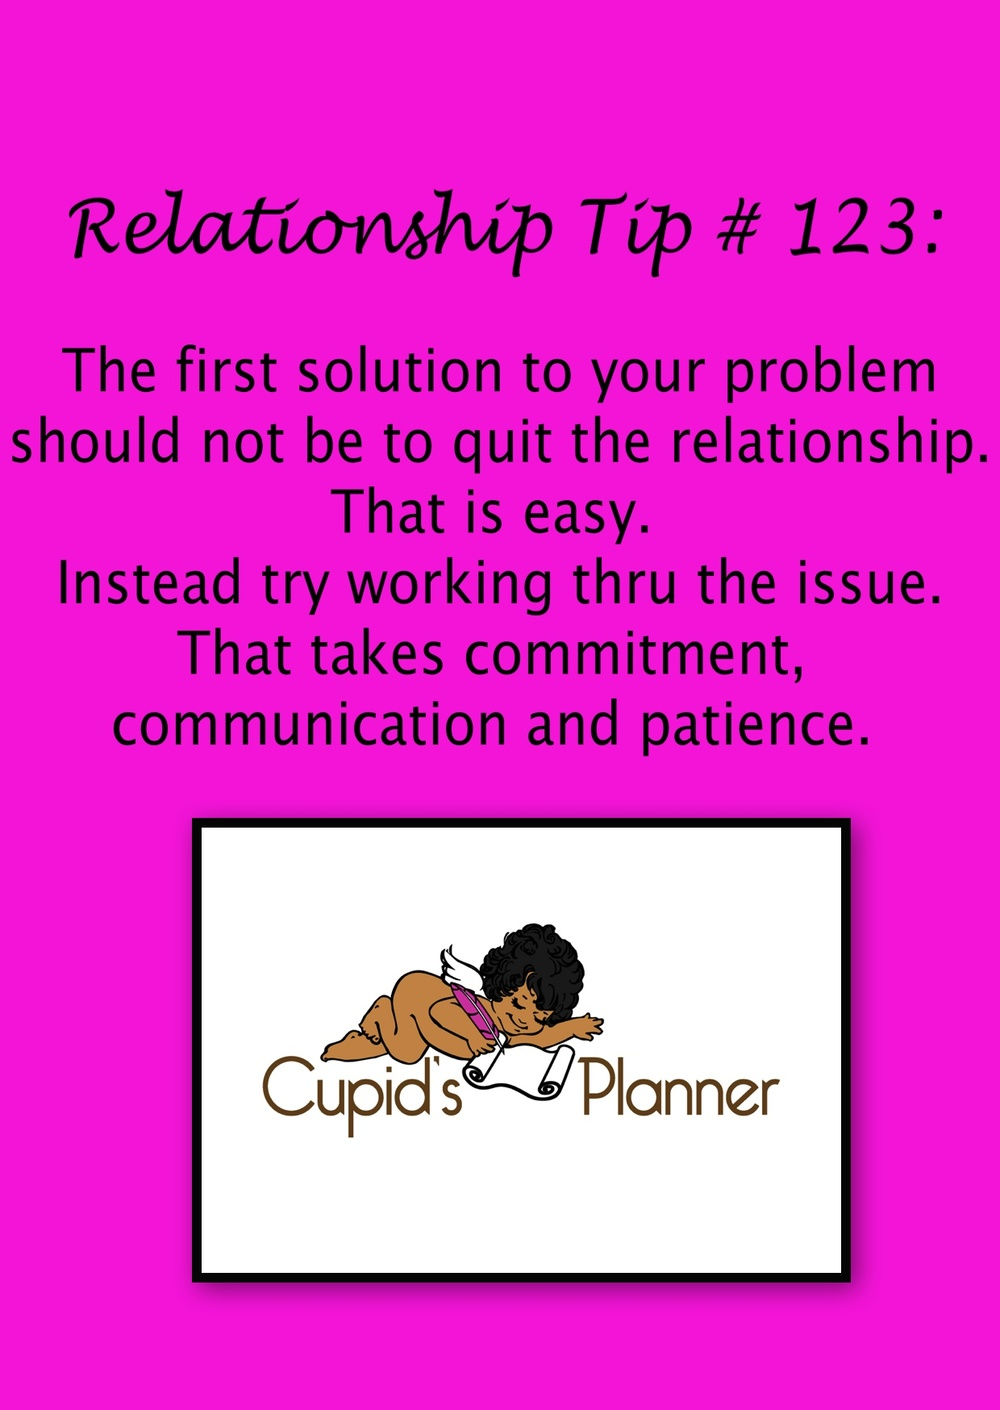 Relationship Tip: Work thru relationship problems